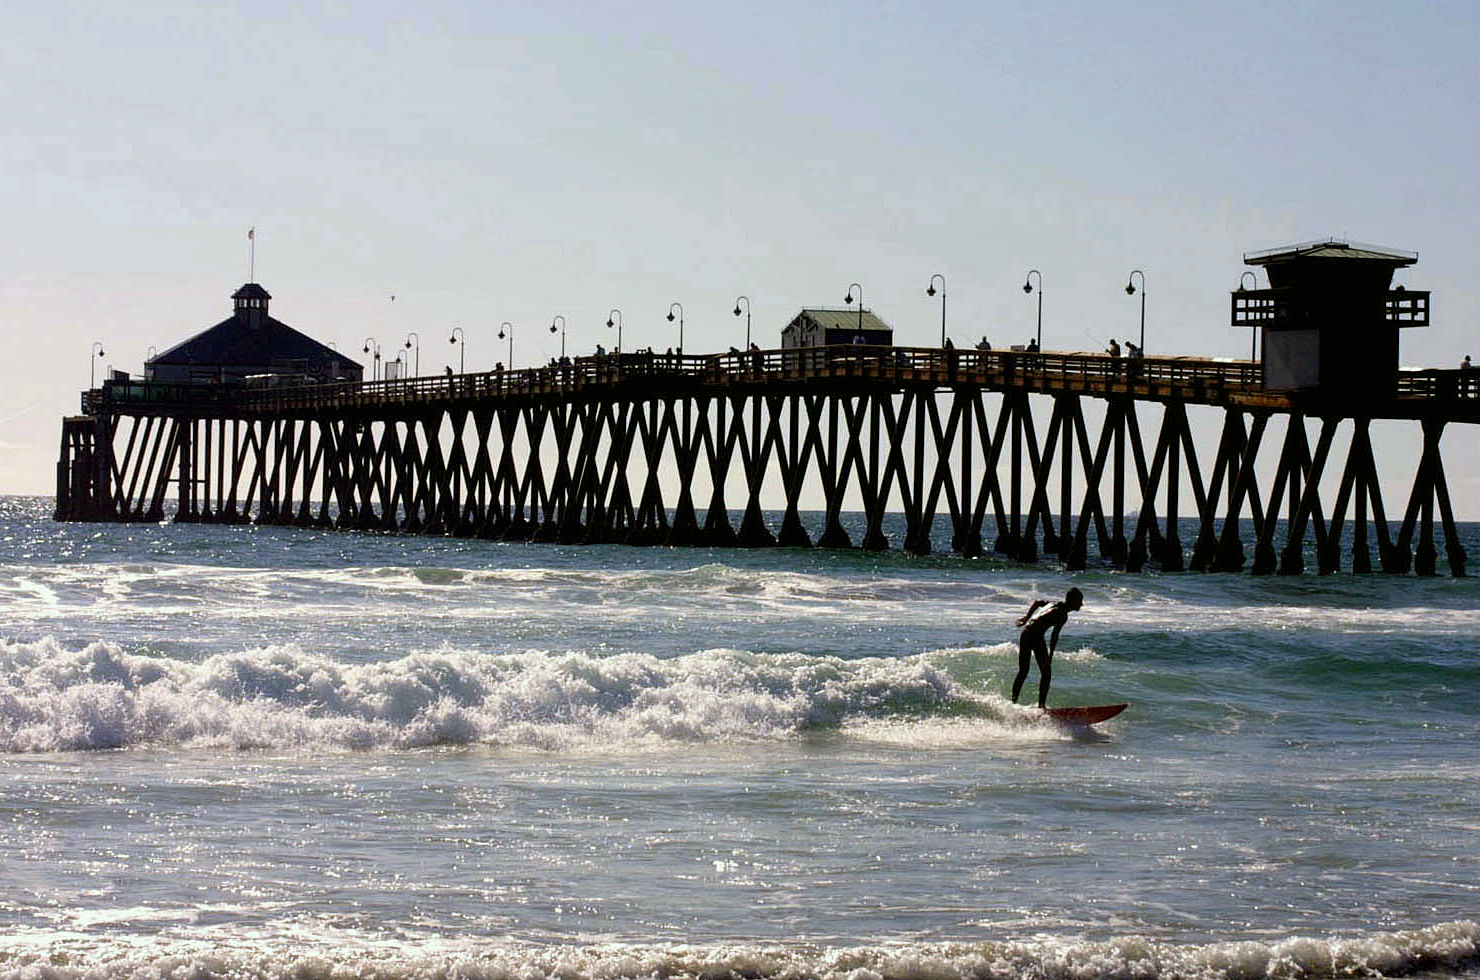 Surfer in front of Imperial Beach Pier in San Diego's South Bay